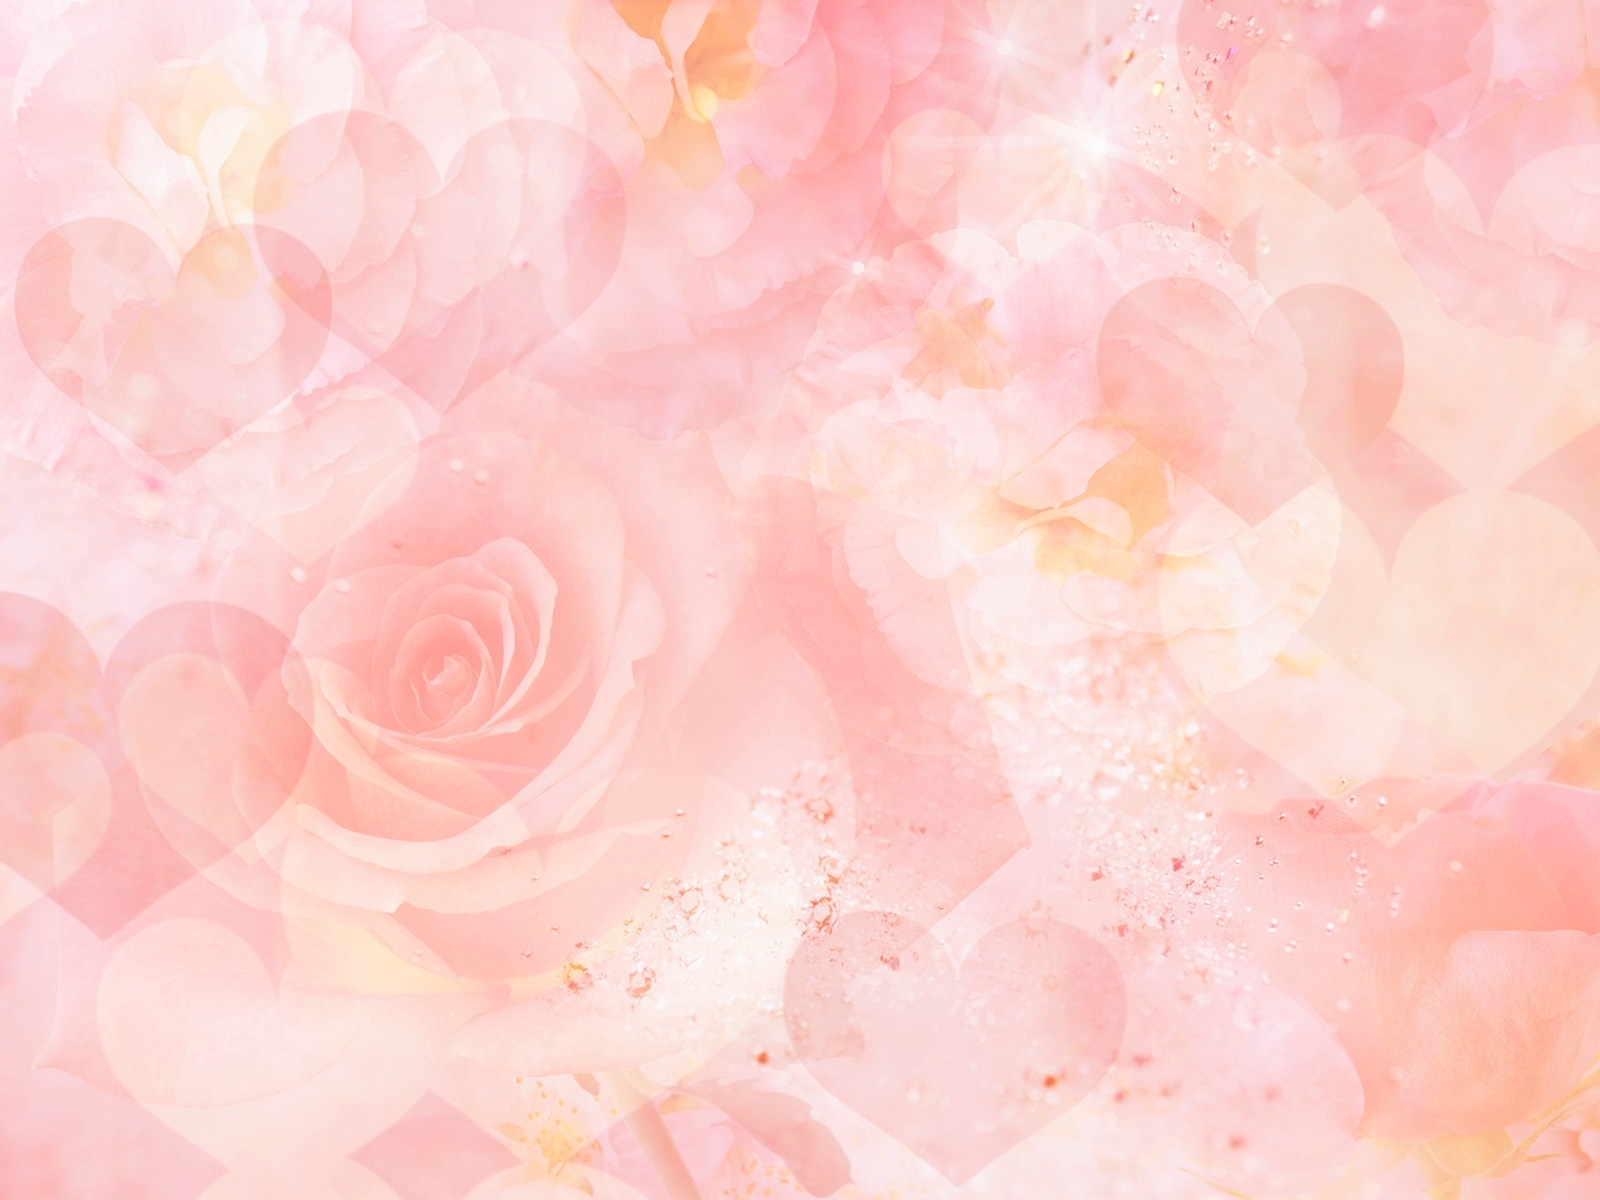 best roses background - wallpaper, high definition, high quality